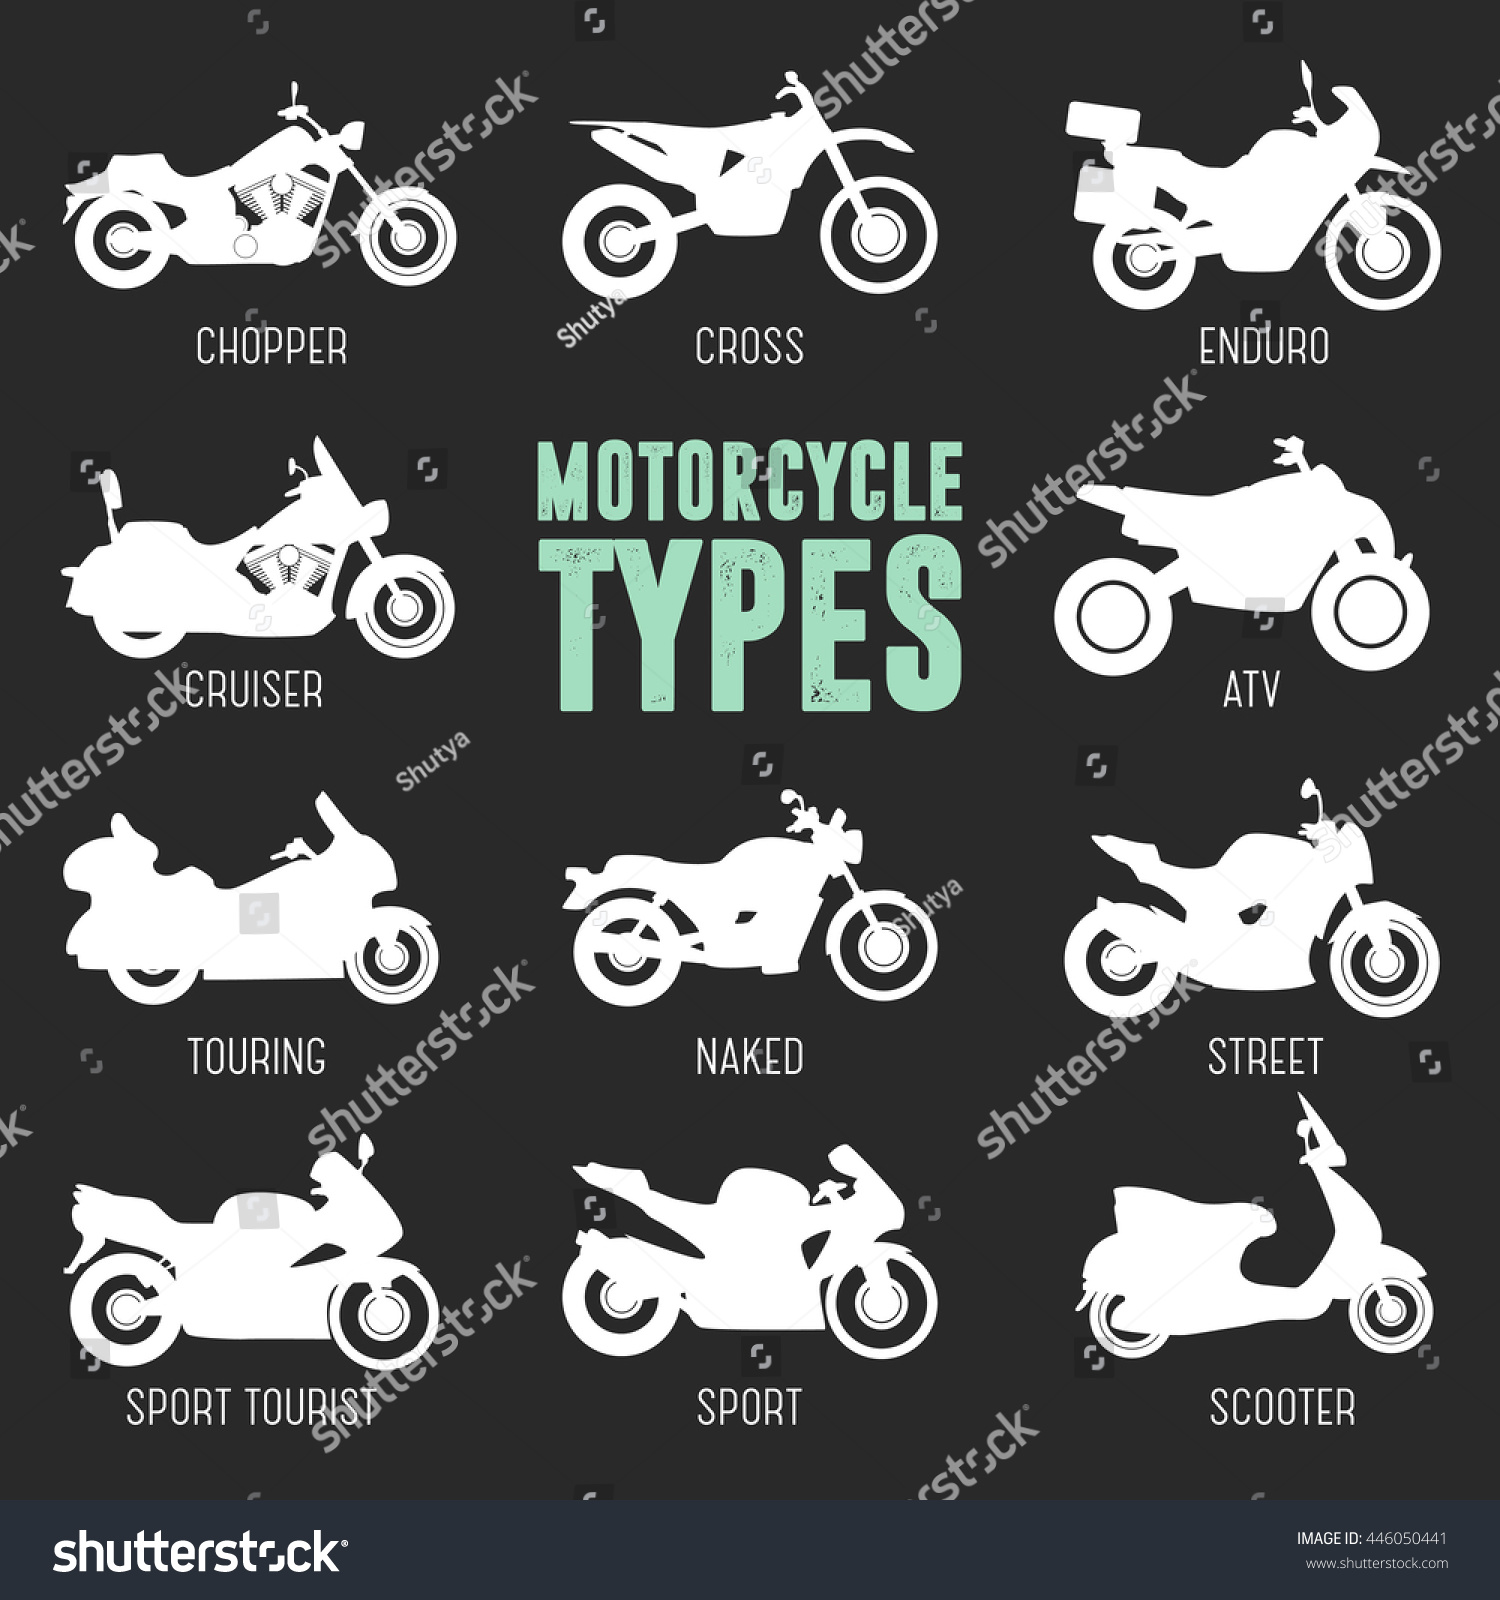 Motorcycle Model And Type Objects Icons Moto Set Black Vector Illustration Isolated On